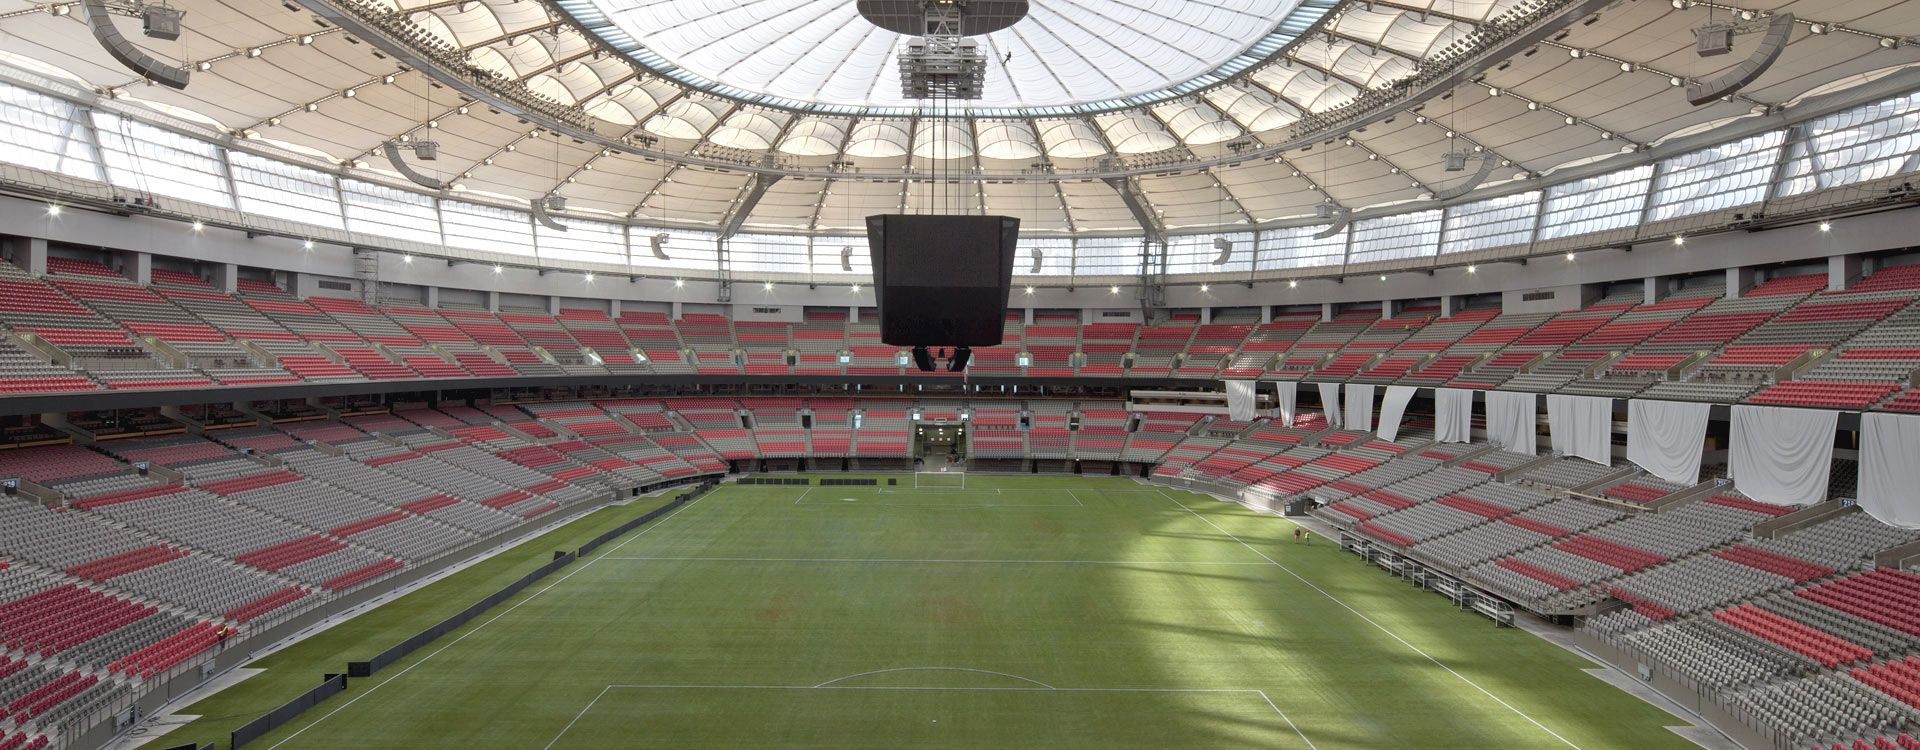 Engineering Bc Place Stadium Wsp